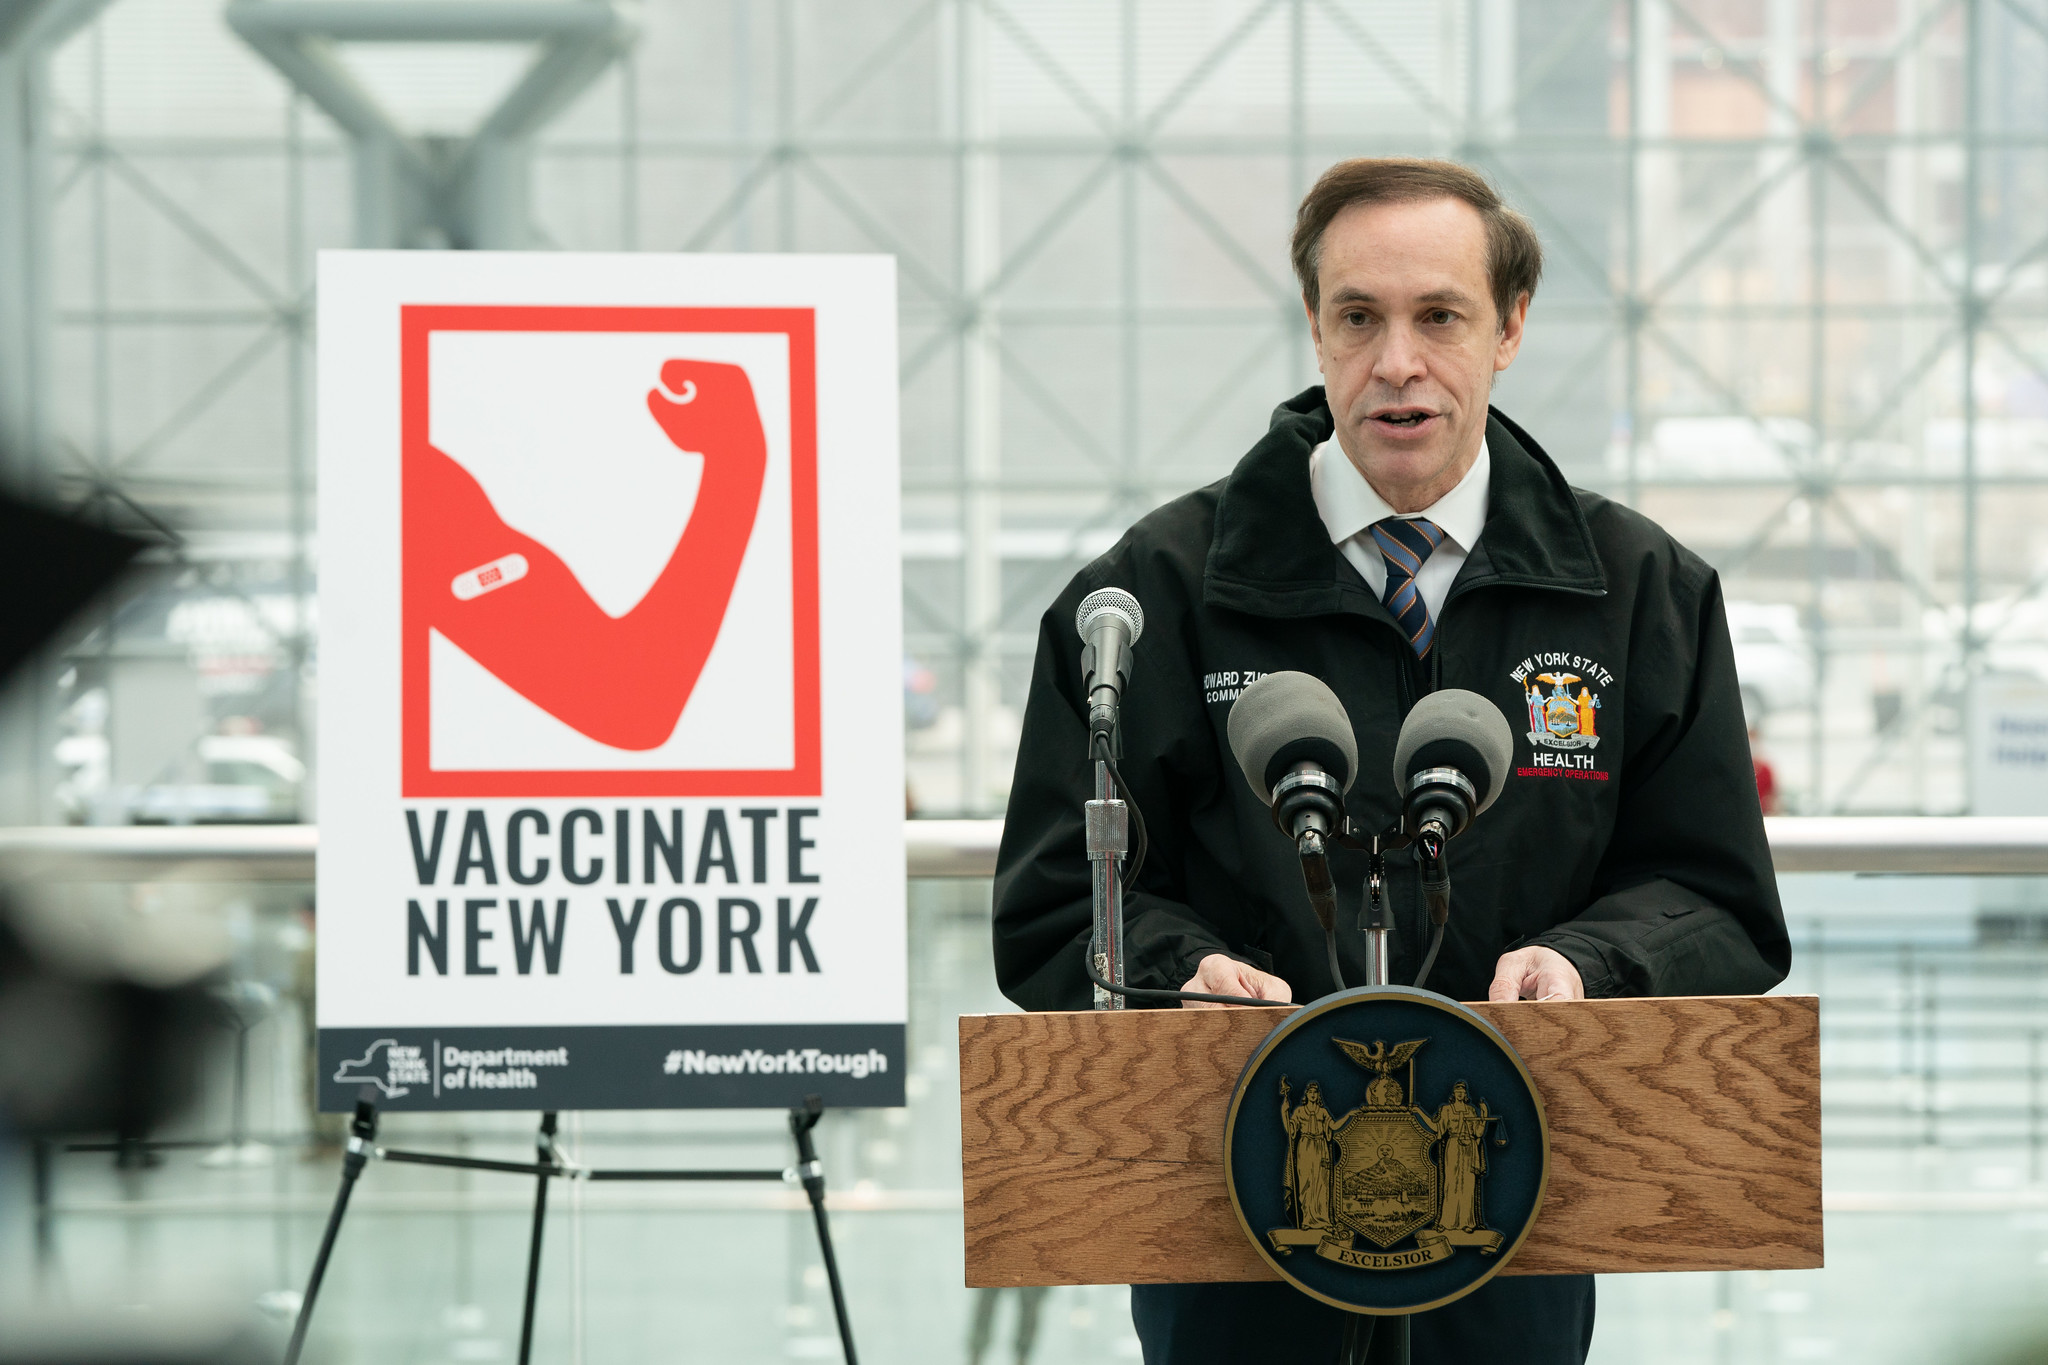 Commissioner Howard Zucker at the opening of the Javits Center mass vaccination site in Manhattan, January 13th, 2021